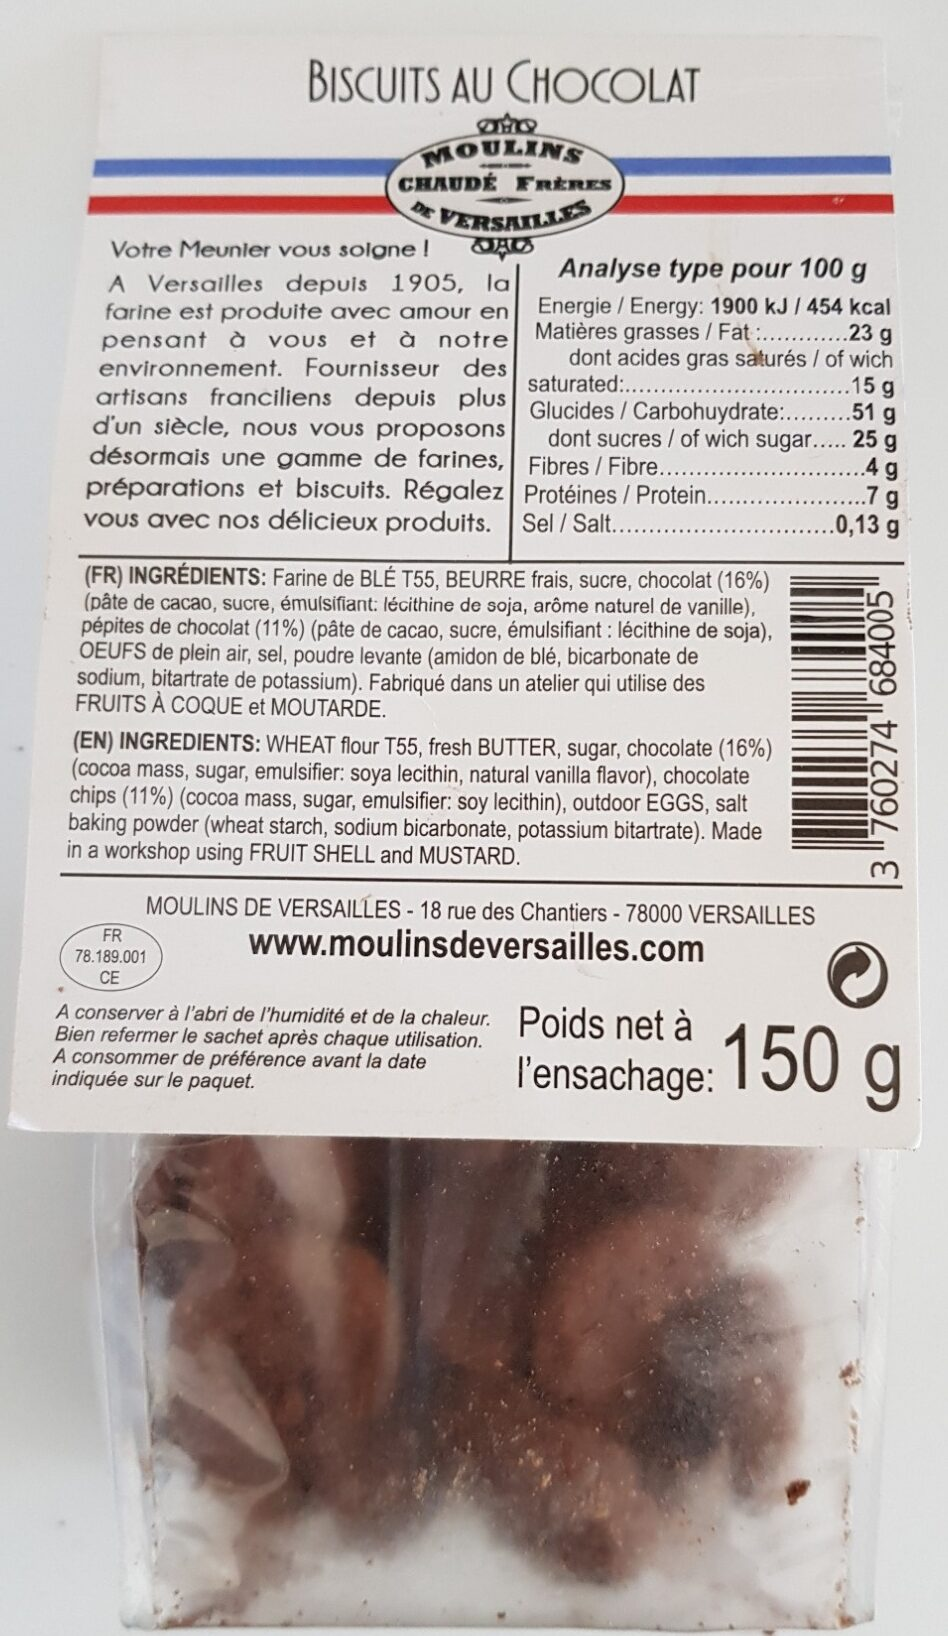 Biscuits au Chocolat - Product - fr